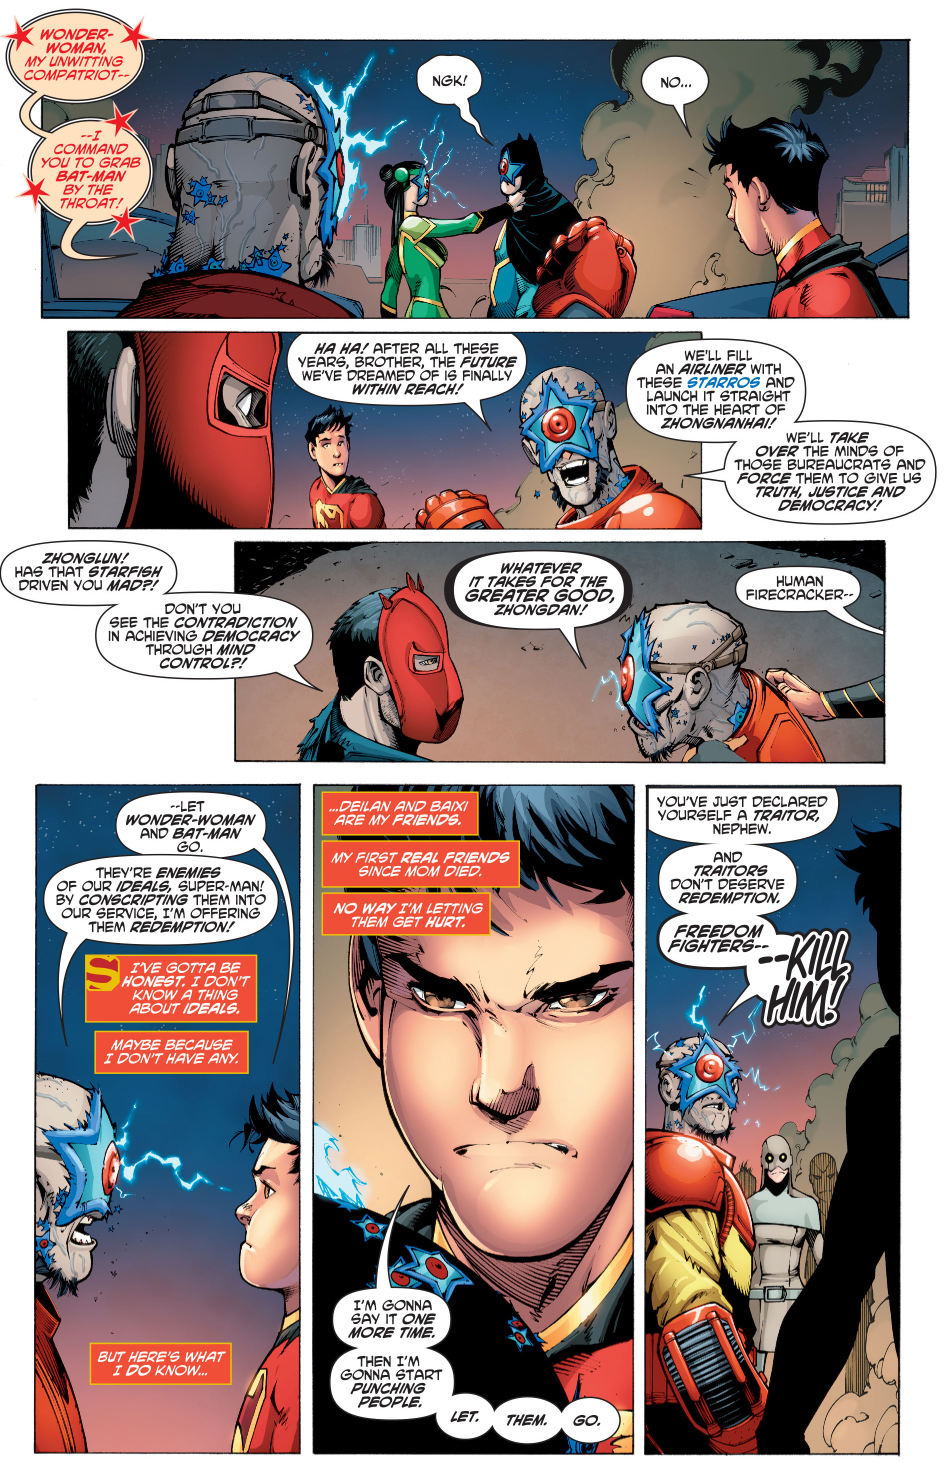 why-chinese-superman-turned-against-the-human-firecracker